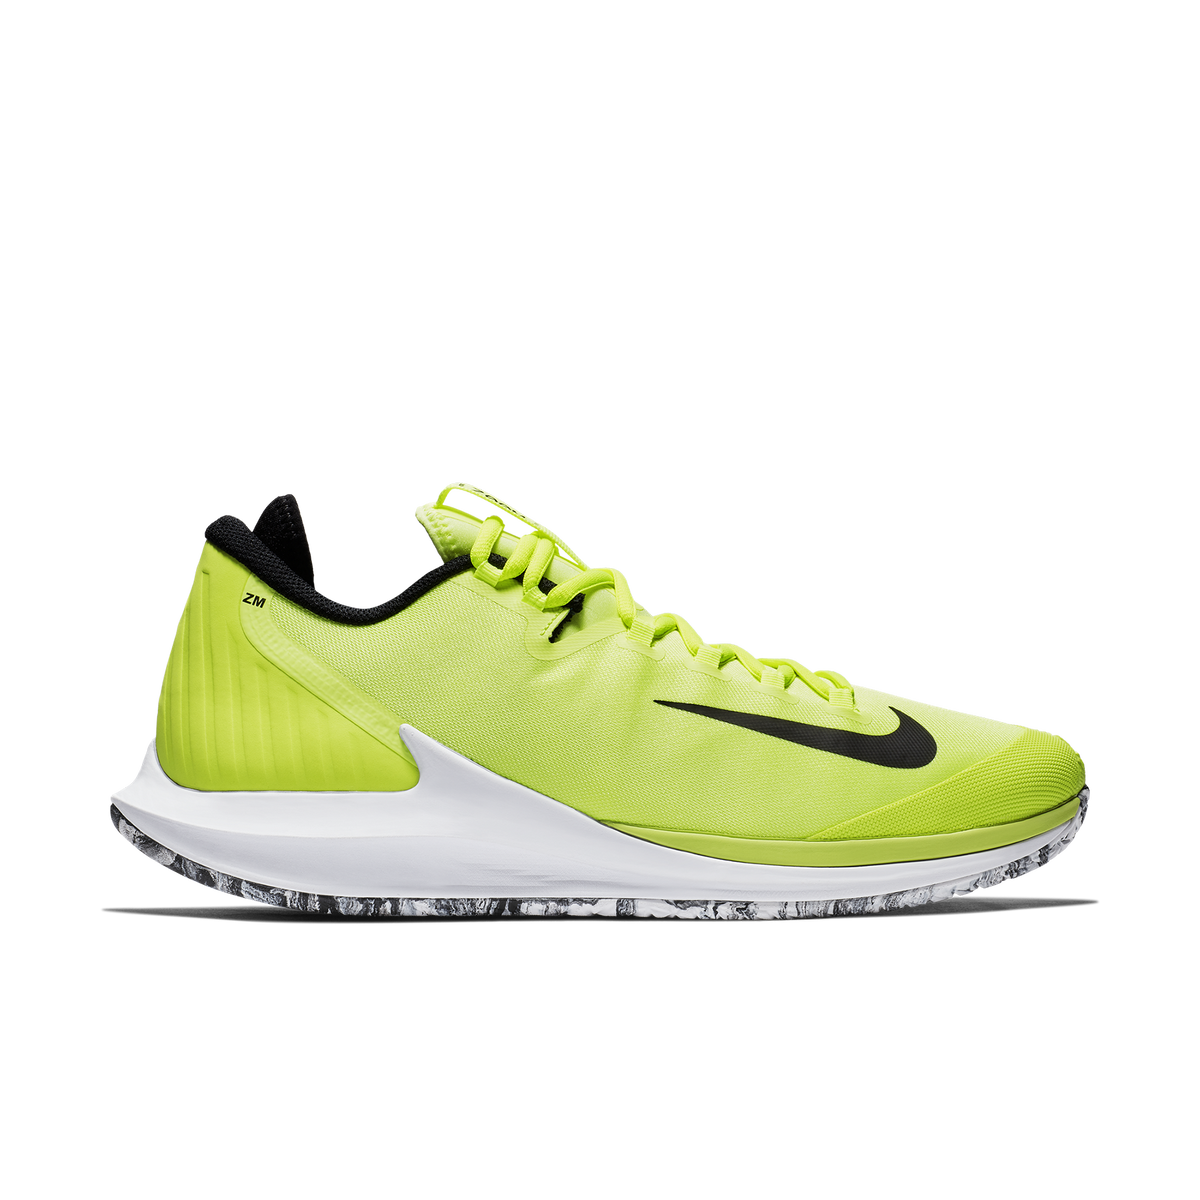 separation shoes 66cba 4bed8 Images. NikeCourt Air Zoom Zero ...